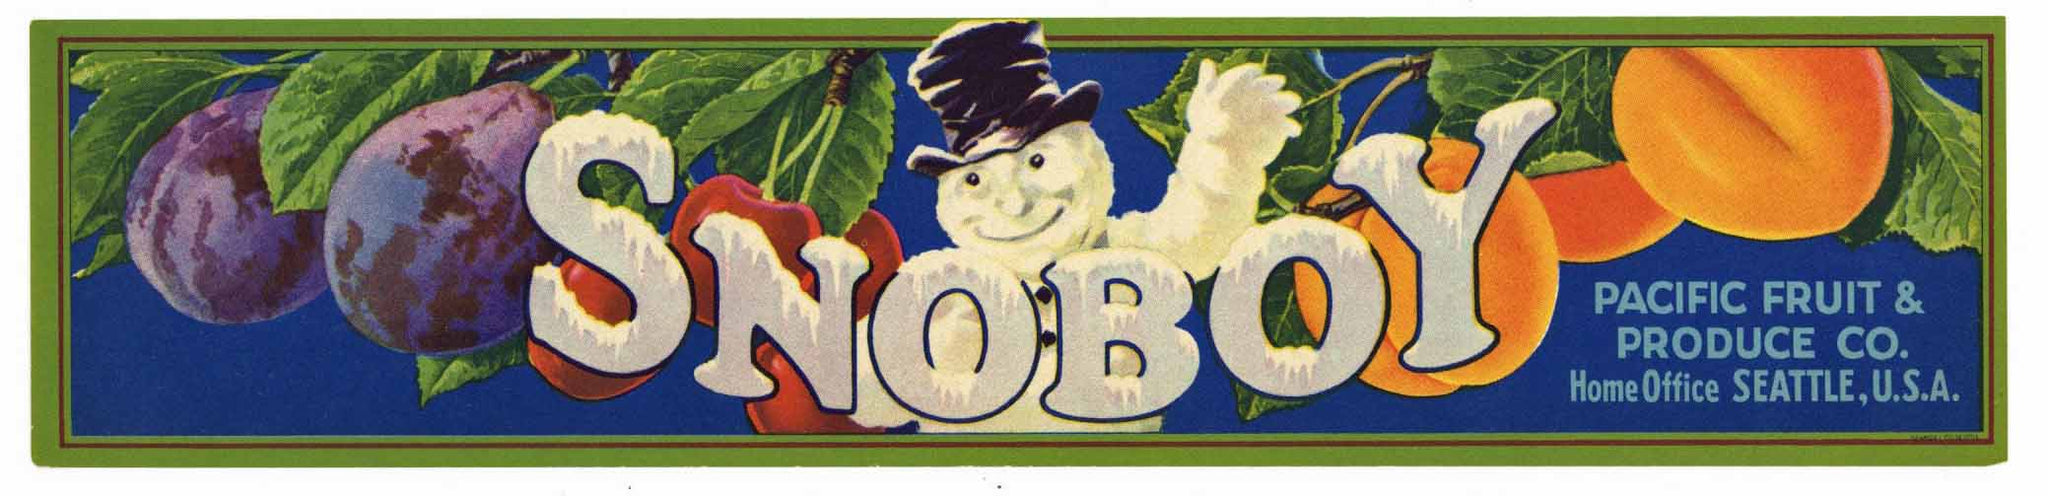 Snoboy Brand Pacific Fruit & Produce Co. Crate Label